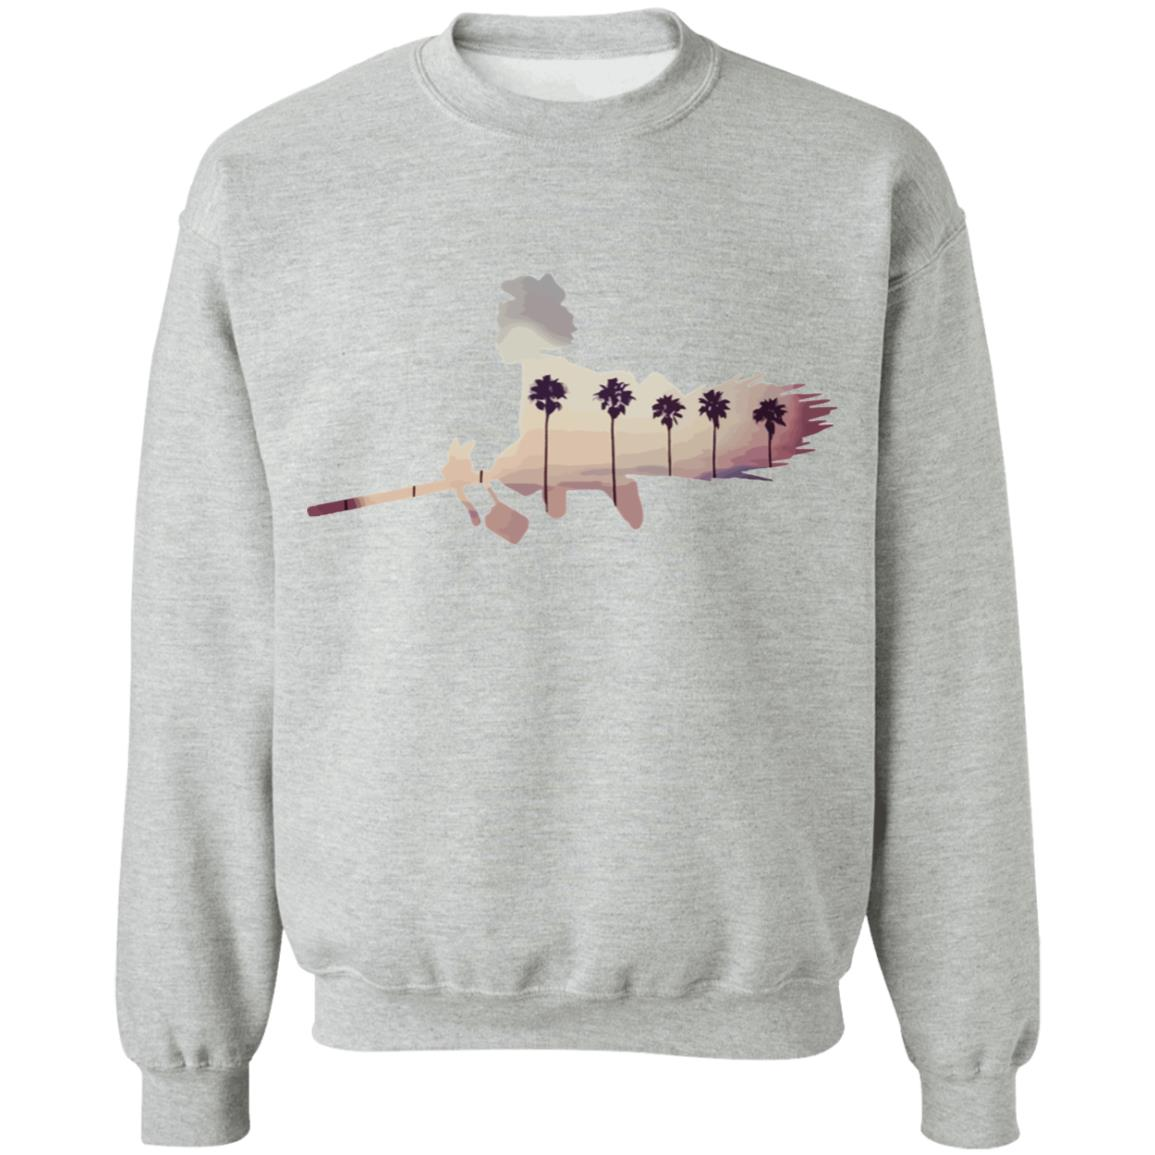 Kiki's Delivery Service – California Sunset Sweatshirt